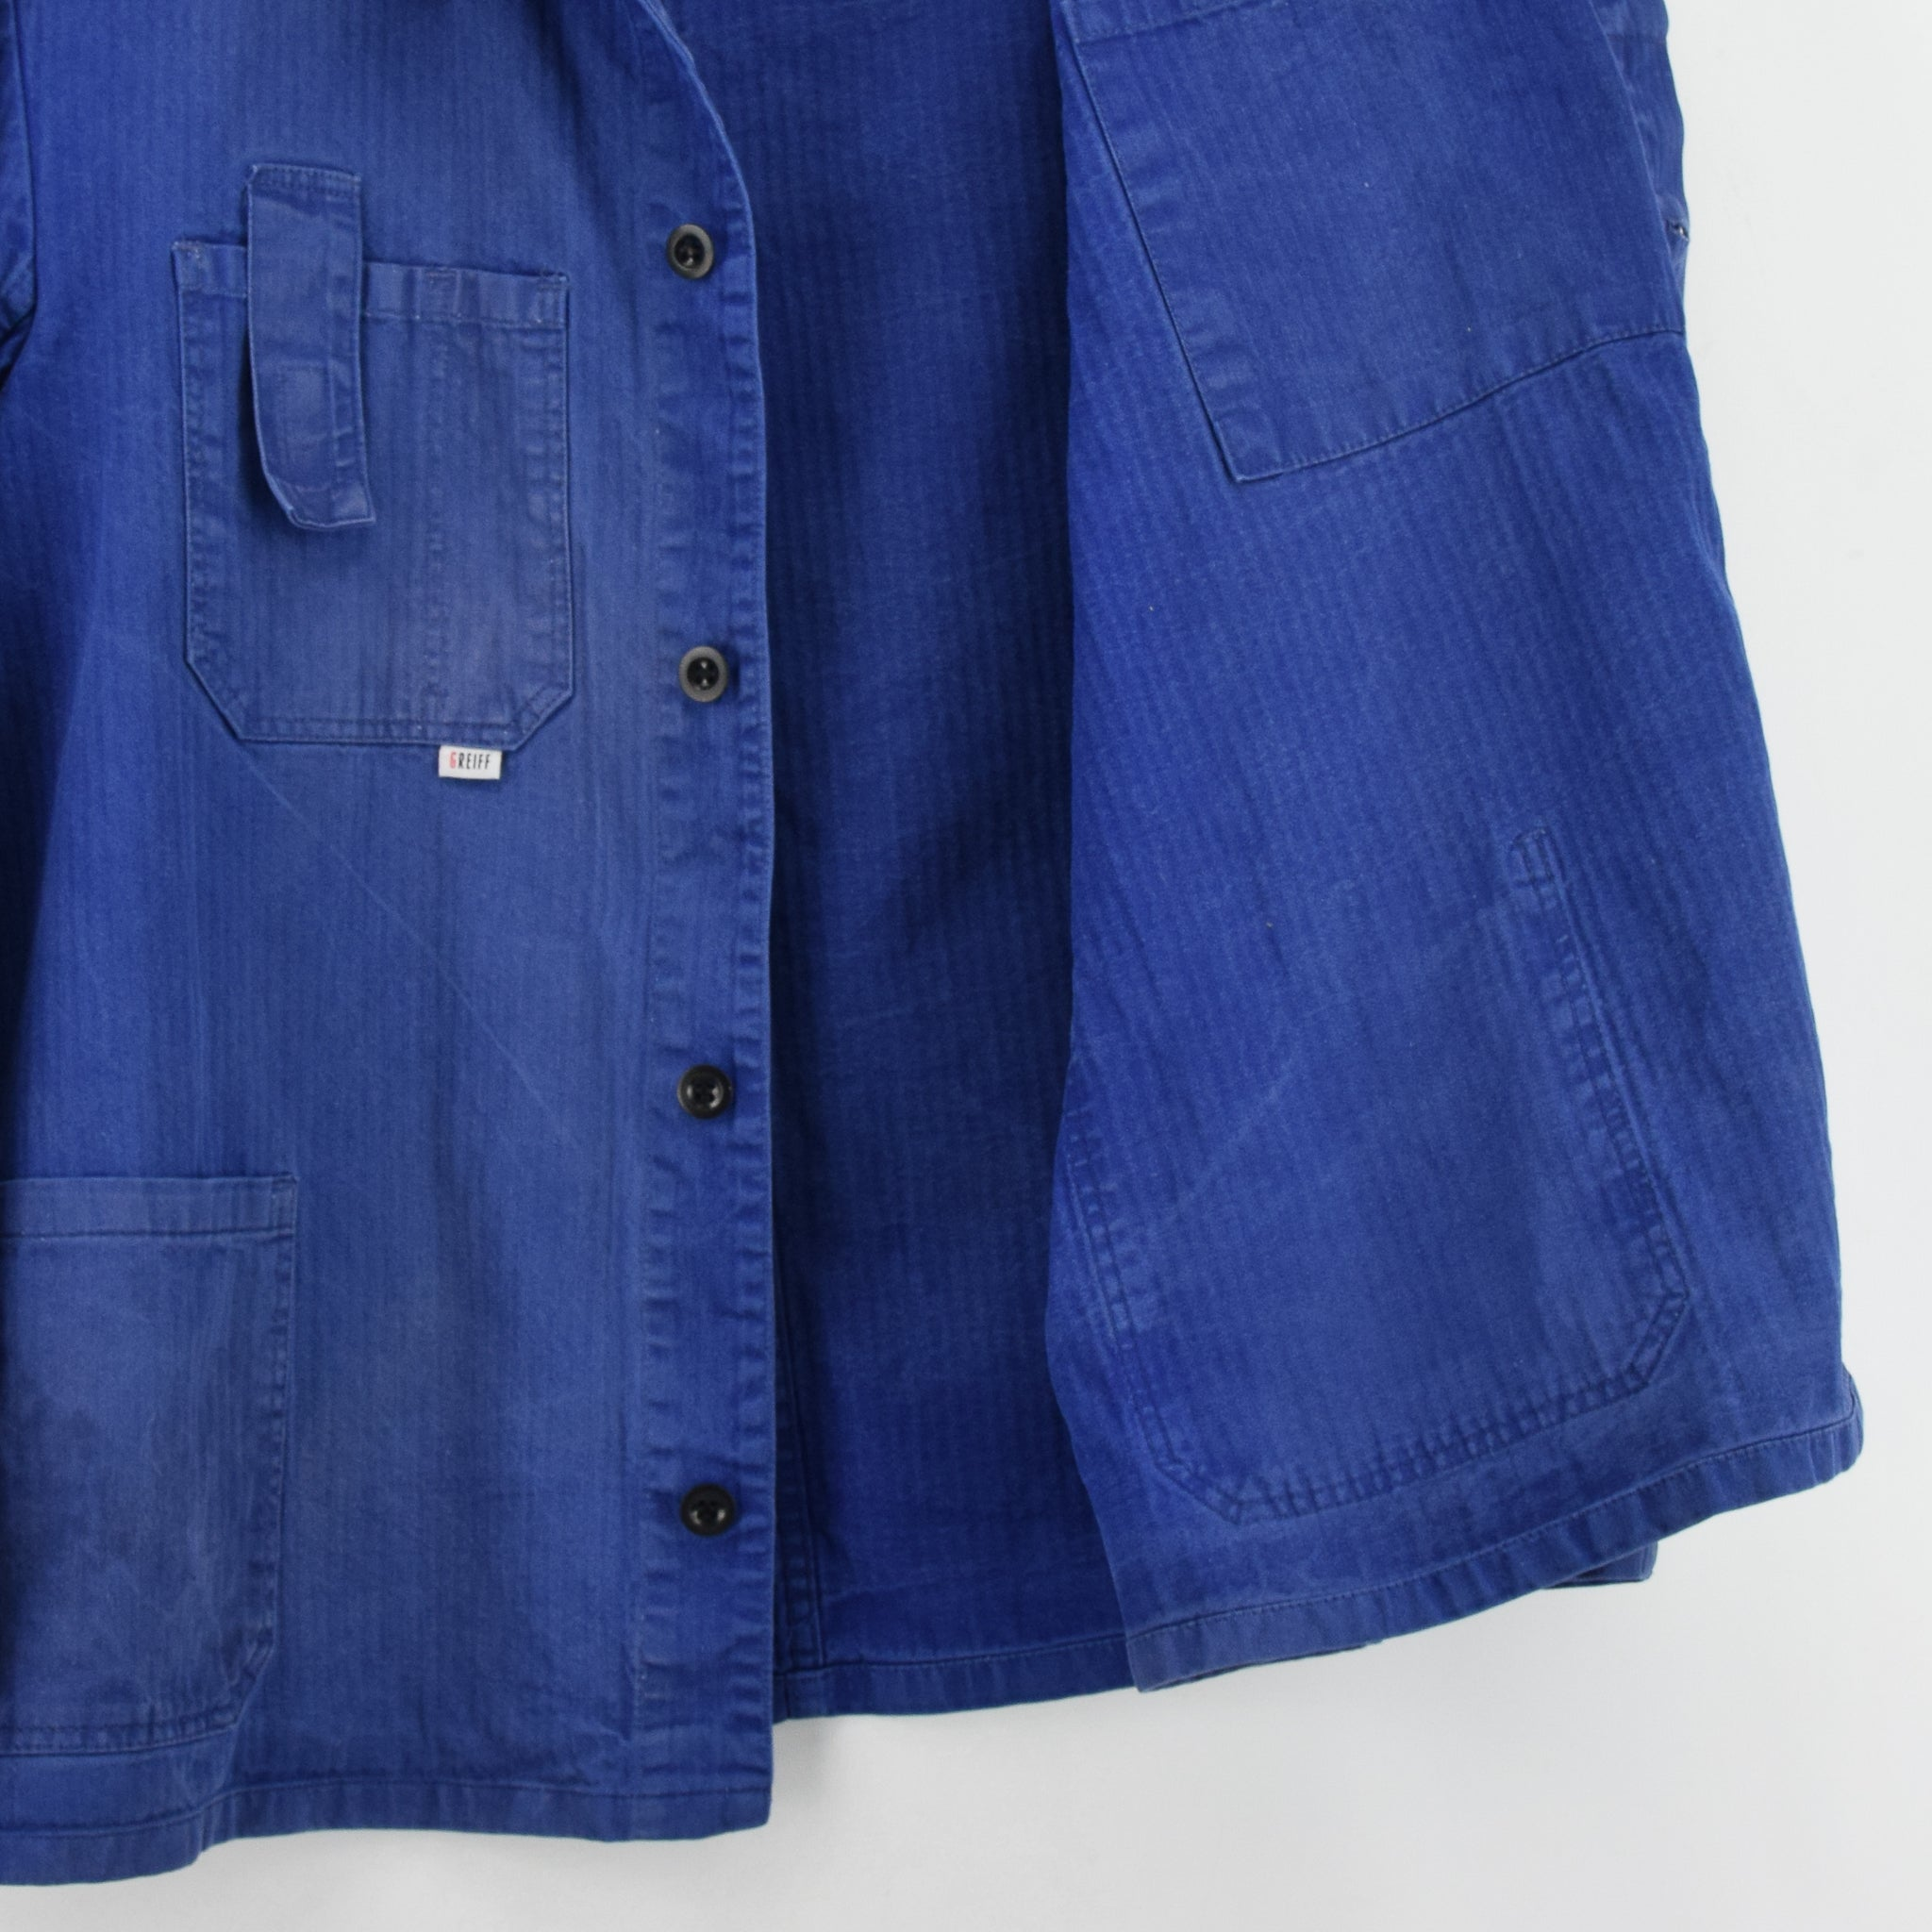 Vintage Distressed Blue French Style Worker Sanforized Cotton Chore Jacket L lining